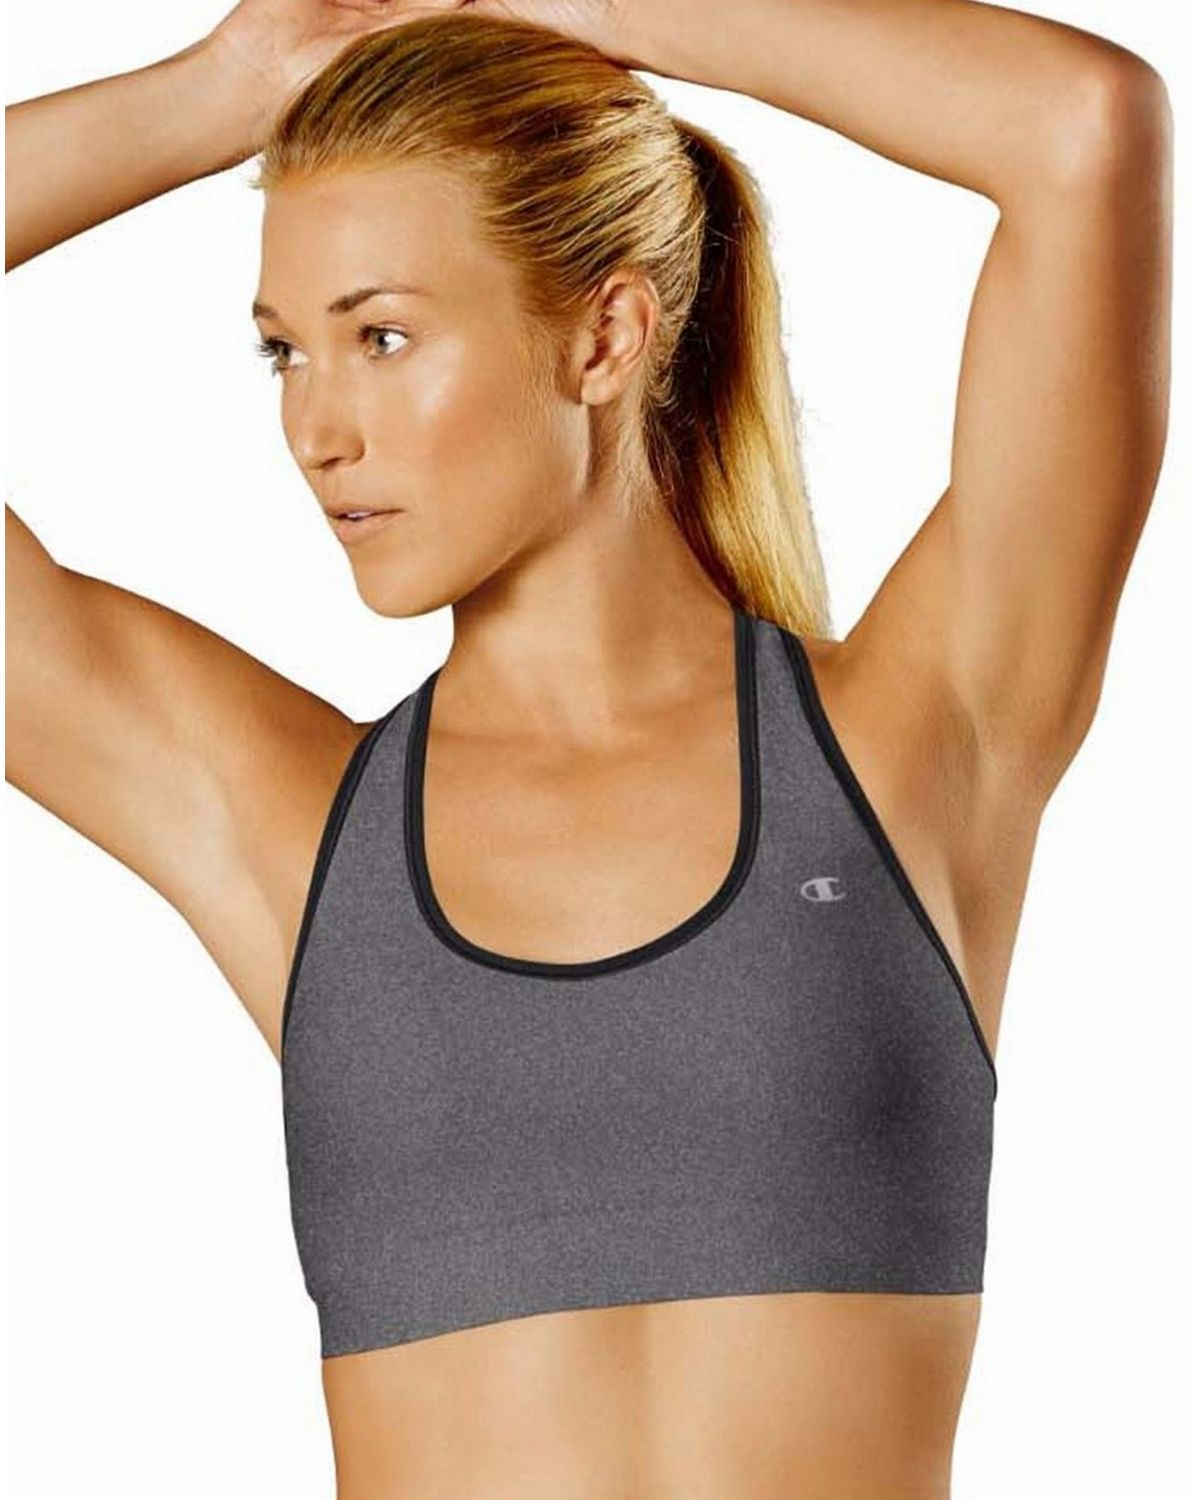 Champion B9504 Absolute Racerback Sports Bra - Granite Heather/Black - XS B9504